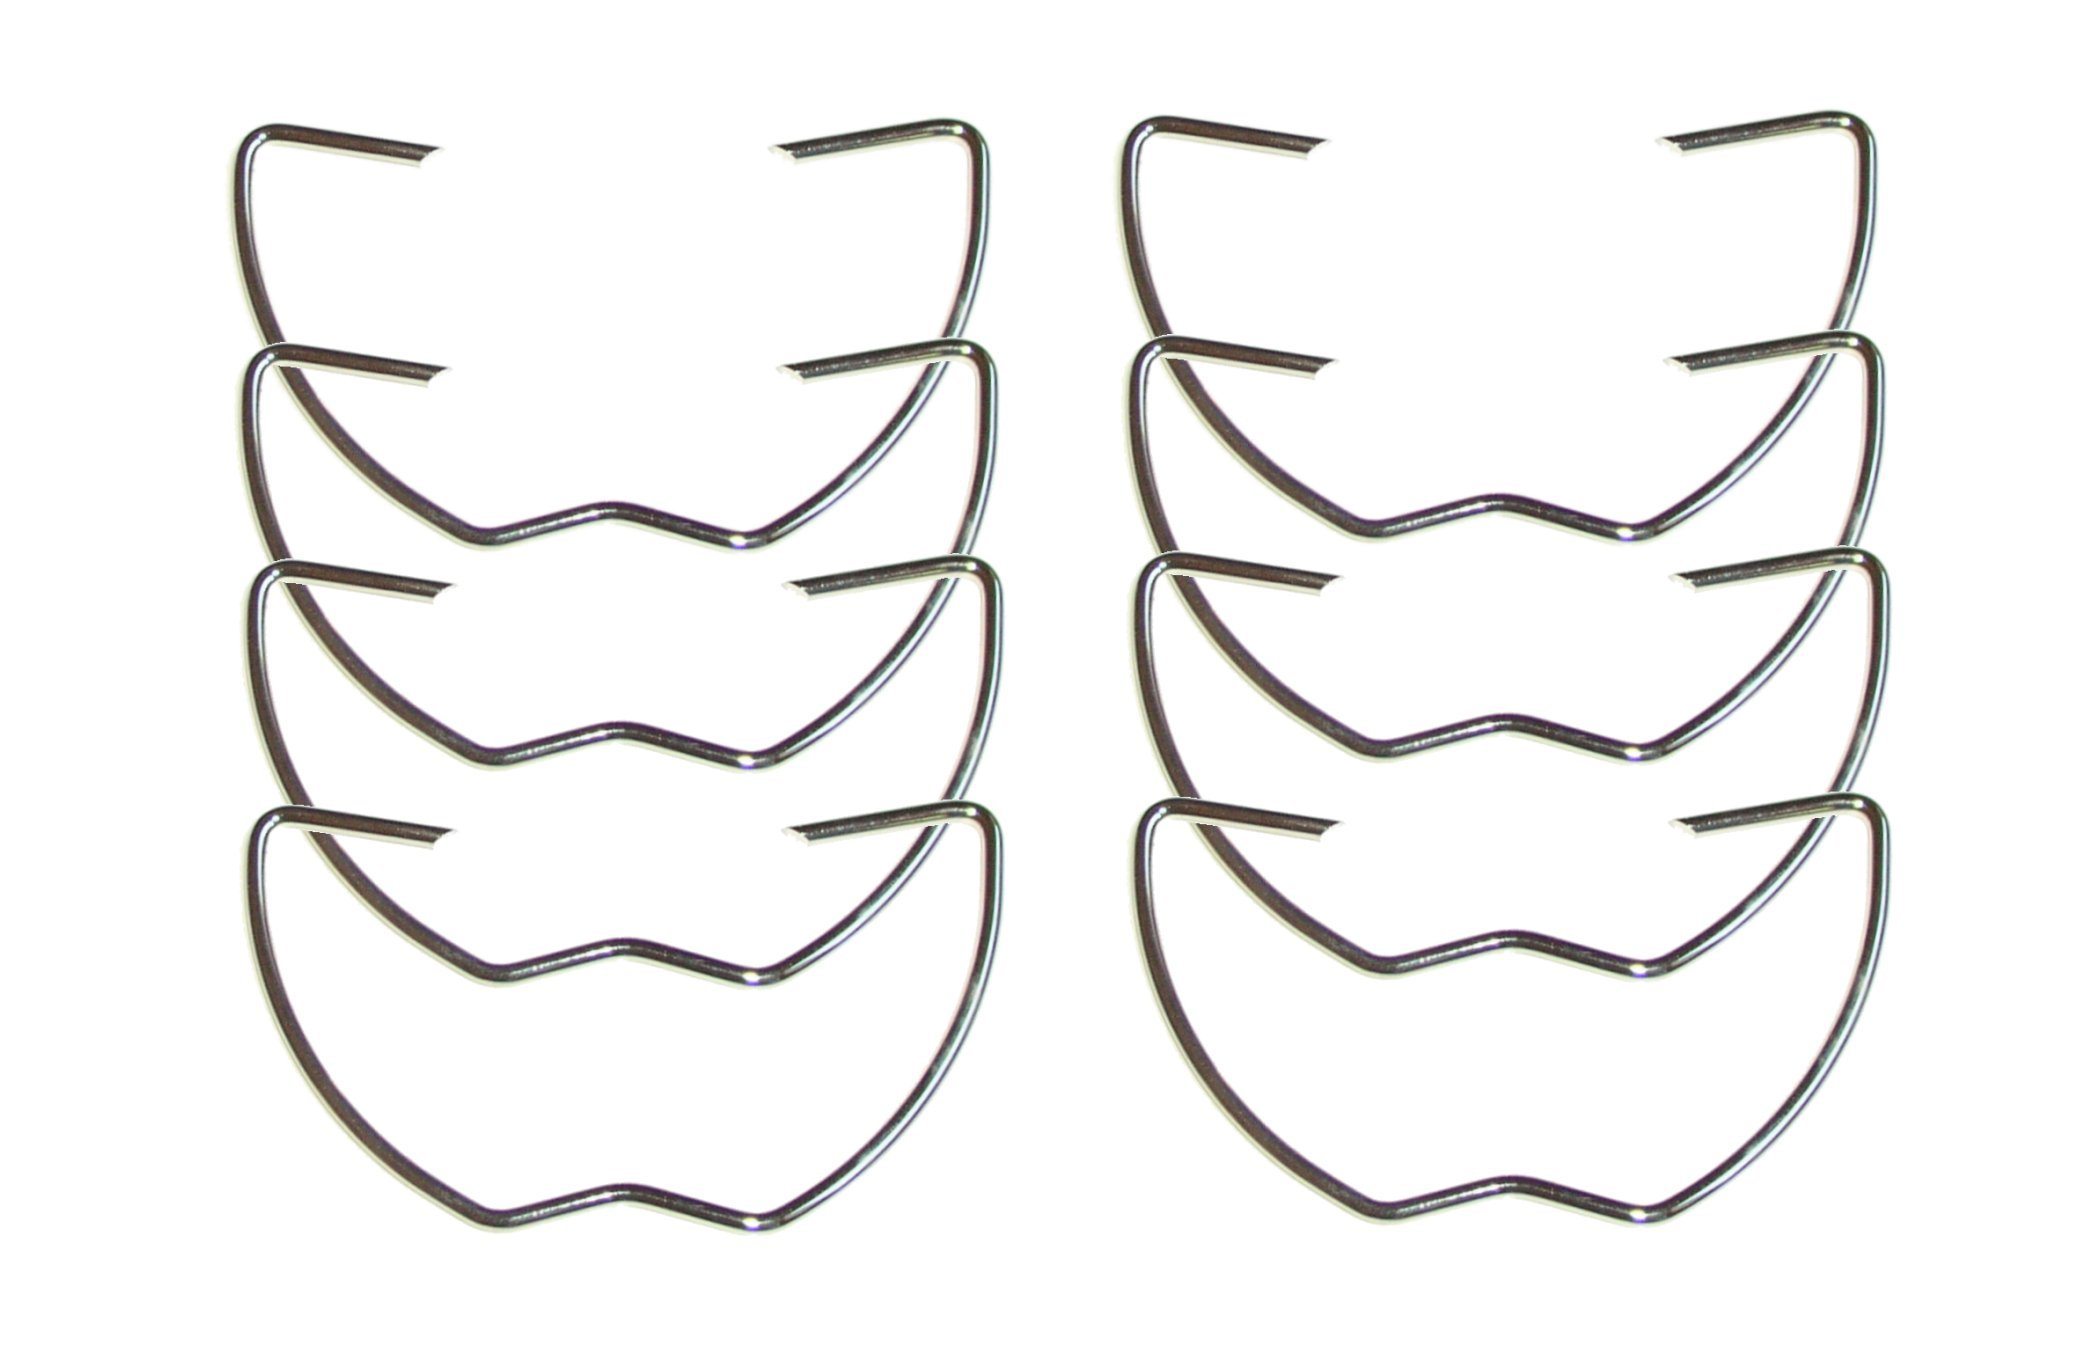 Big Horn 19678 2-3/4 Inch Spring Clamps, 8-Pack